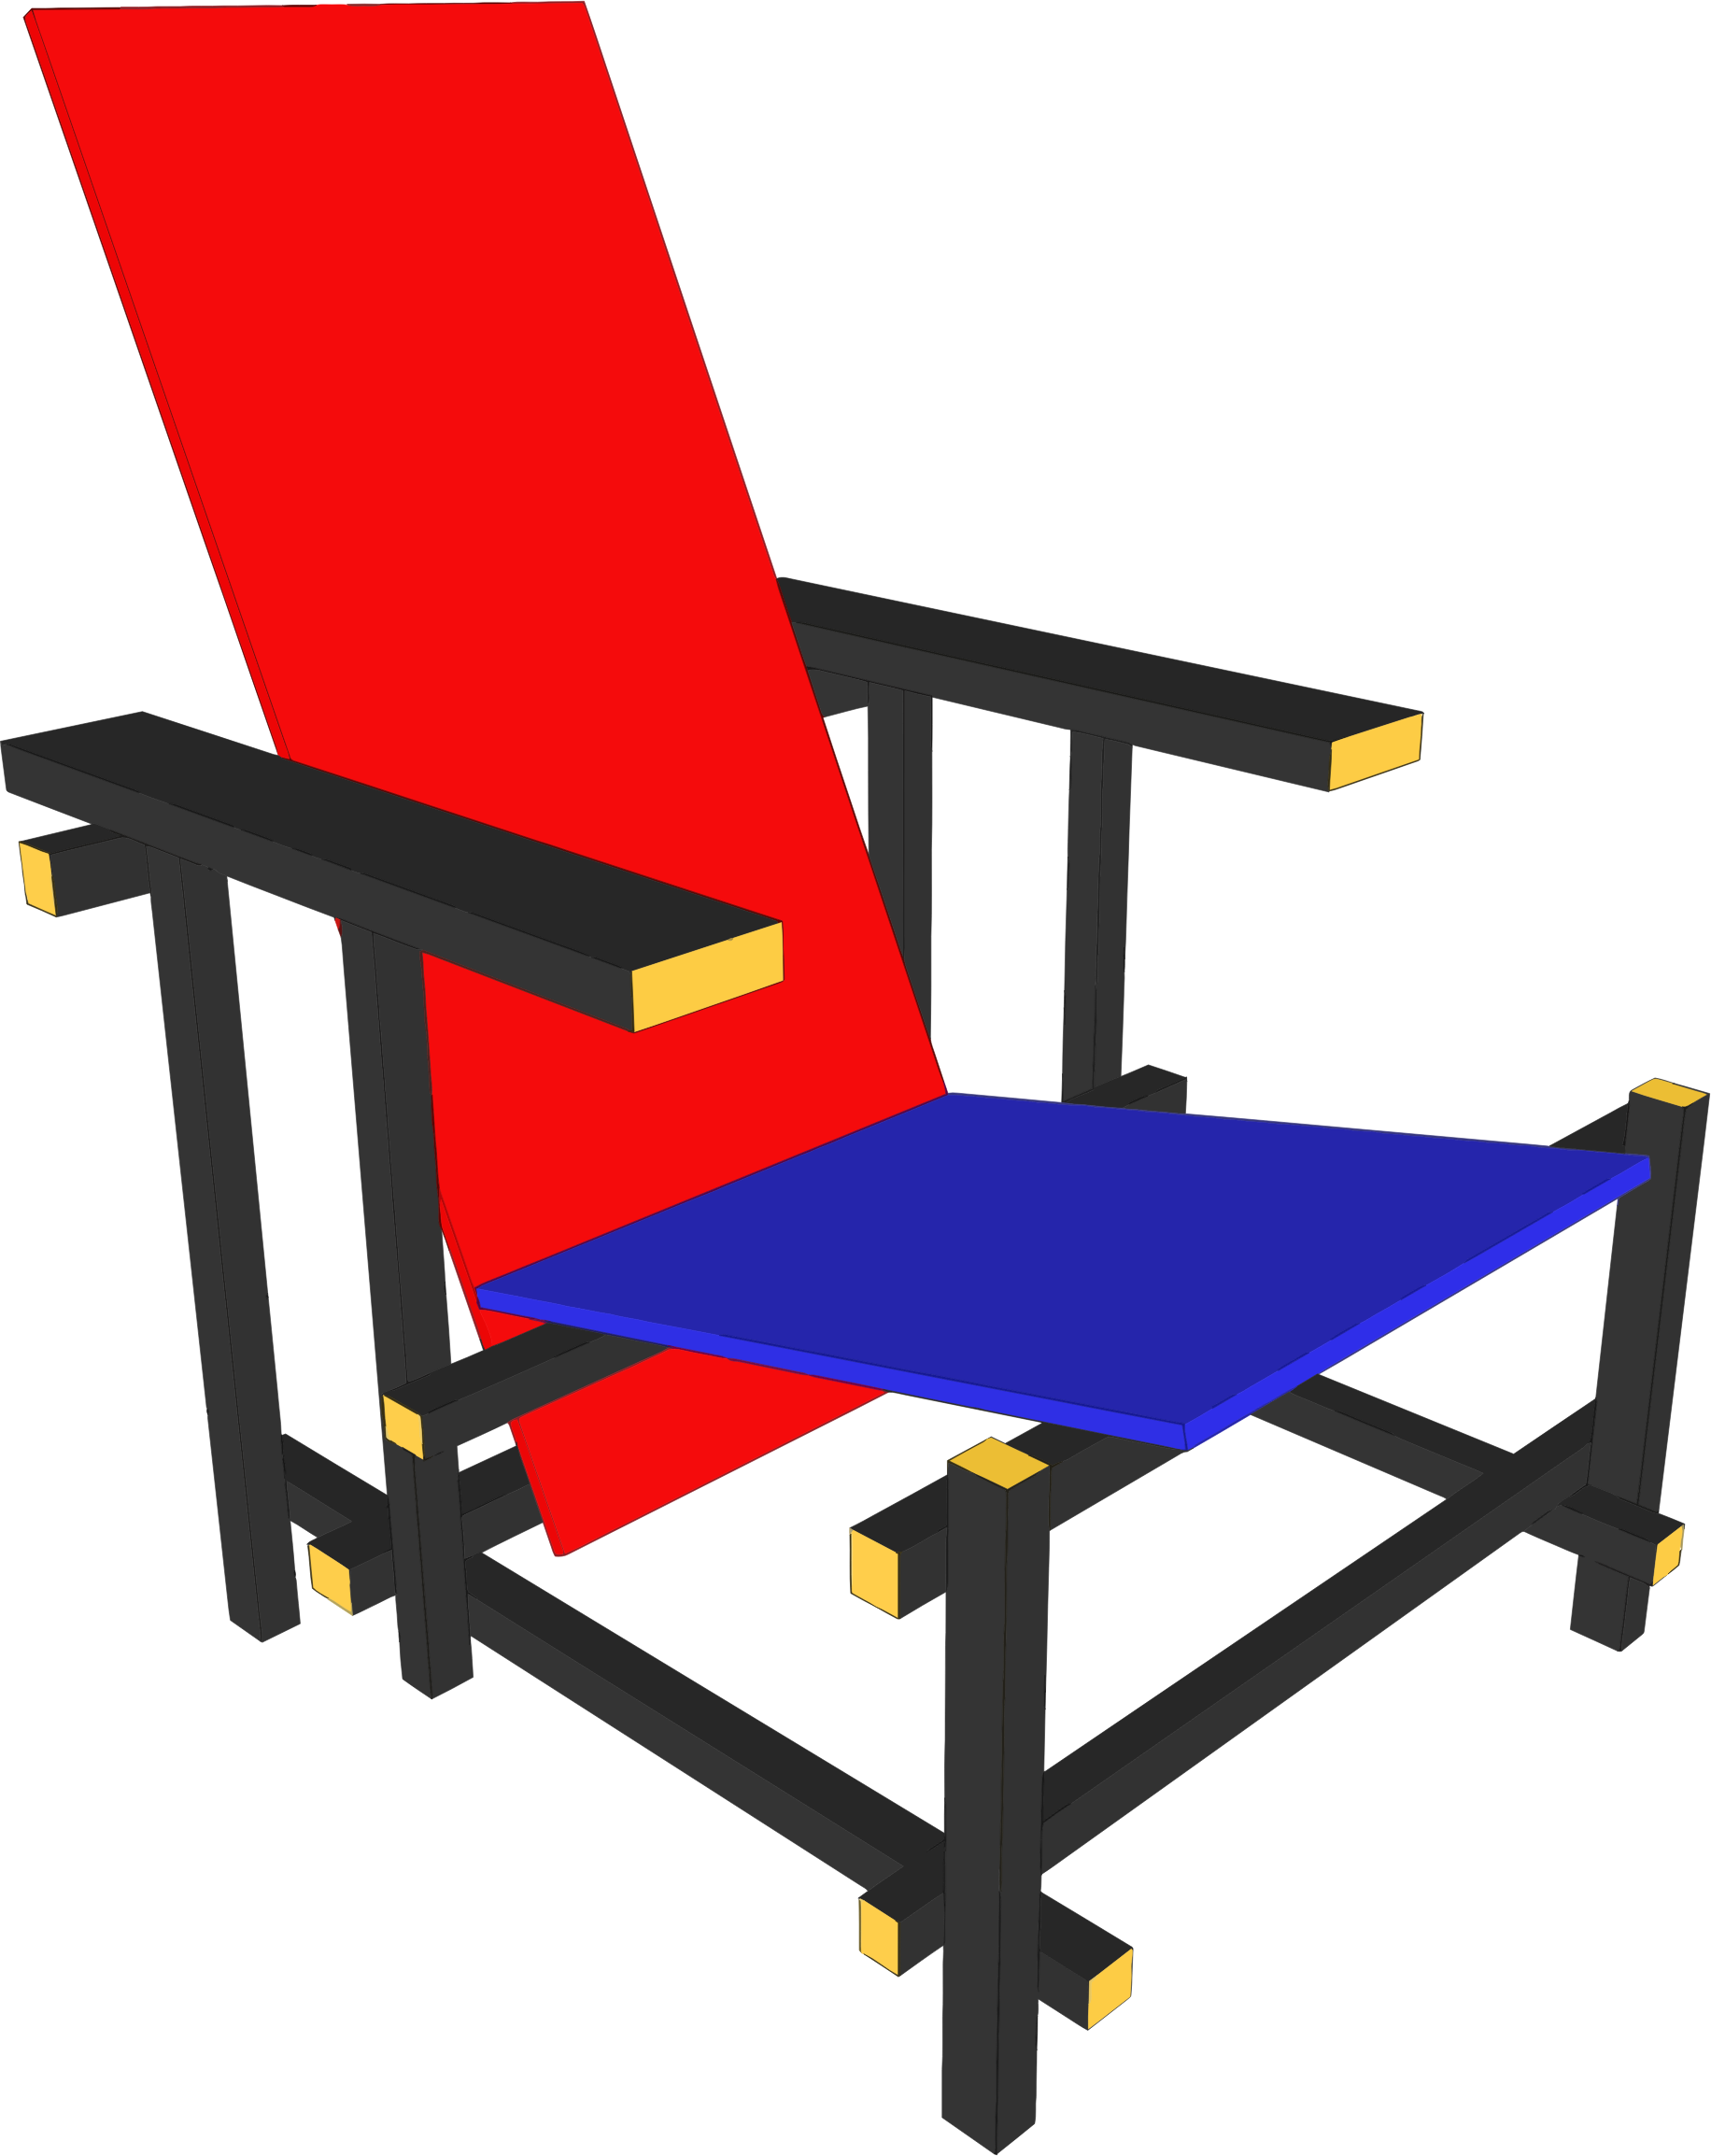 Beach lounge chair png - Big Image Png